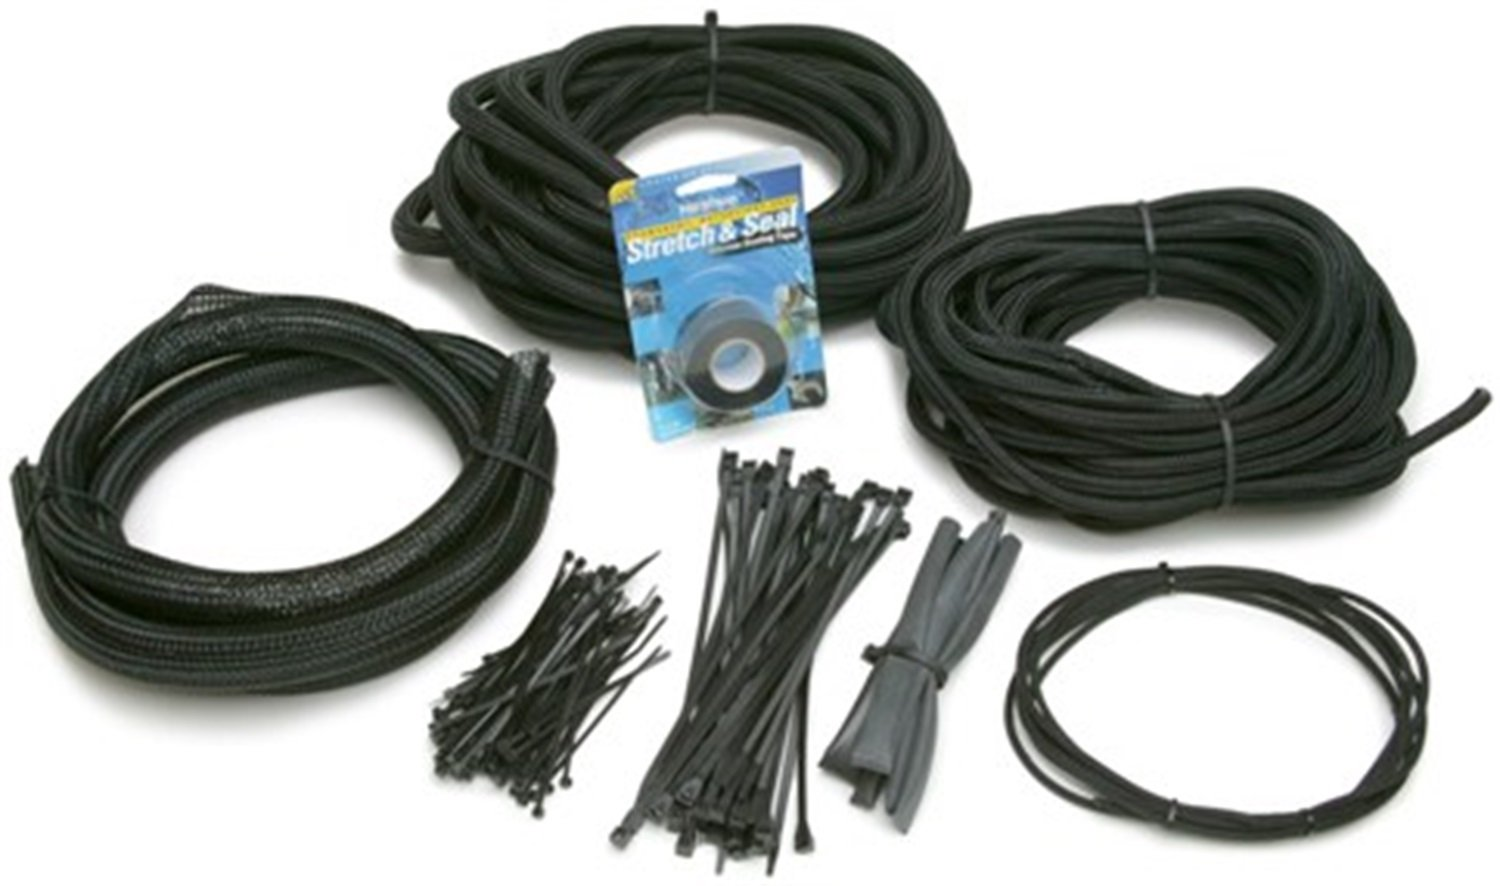 61KyQSub1fL._SL1500_ amazon com painless 70921 powerbraid wire wrap kit automotive